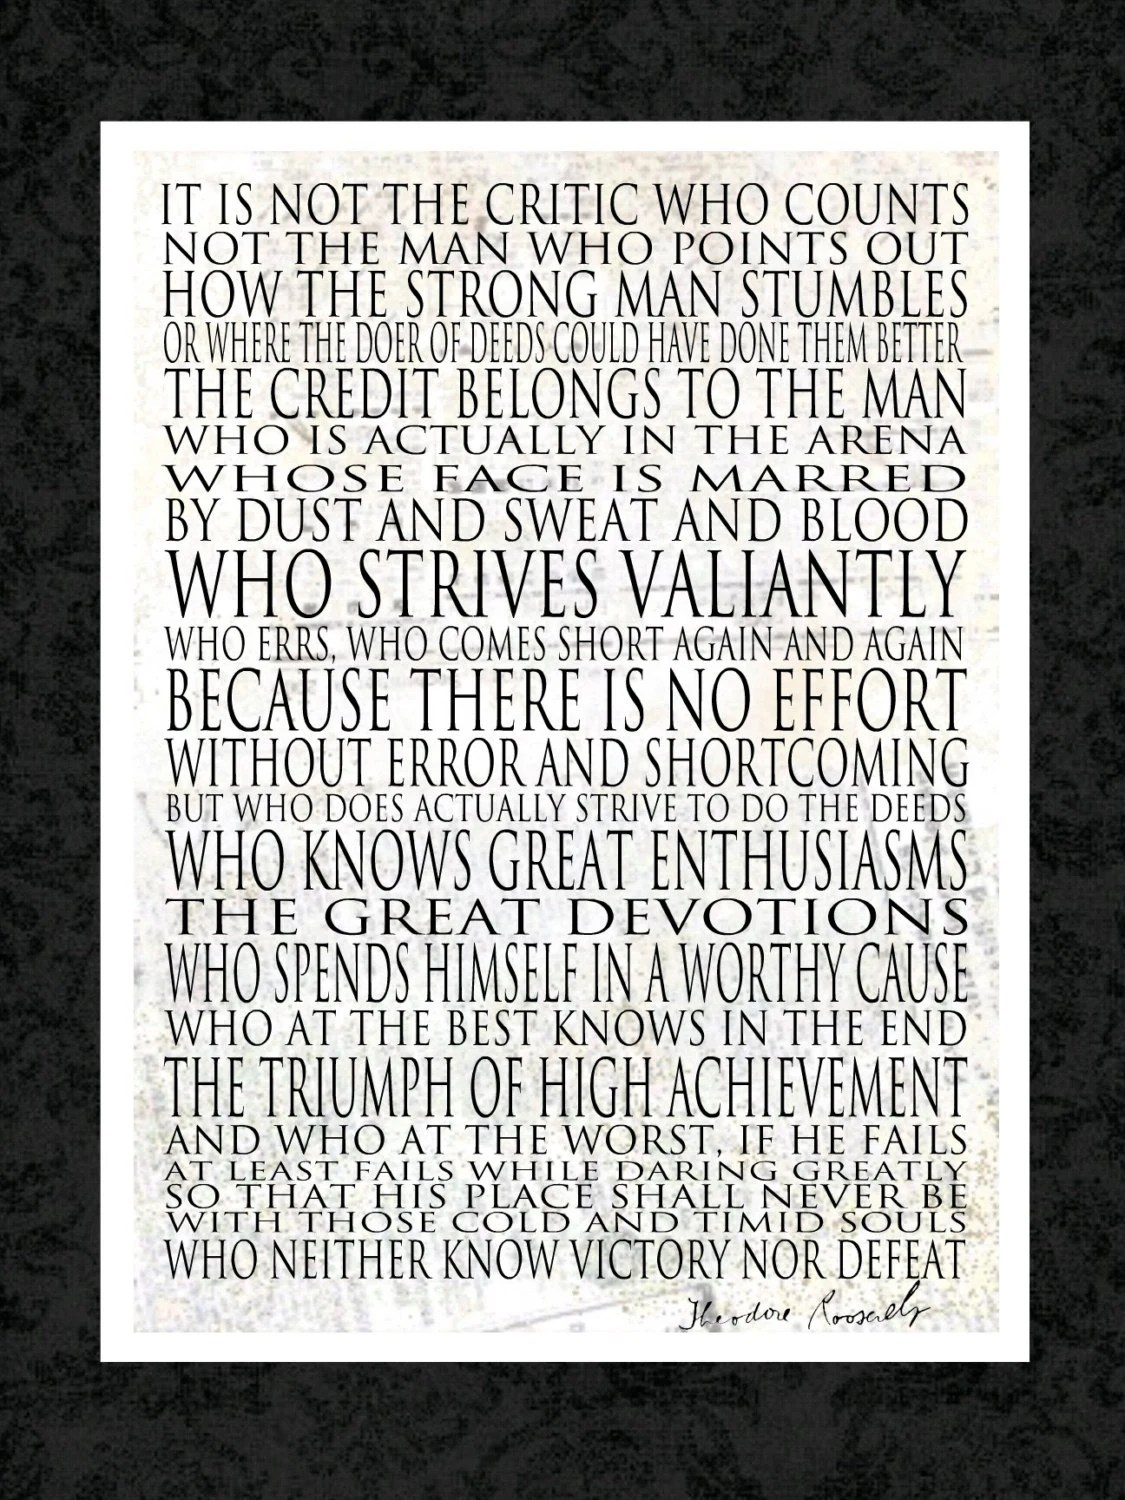 Man in the Arena Motivational Print - 11x14 - WORD ART PRINTS - Theodore Roosevelt